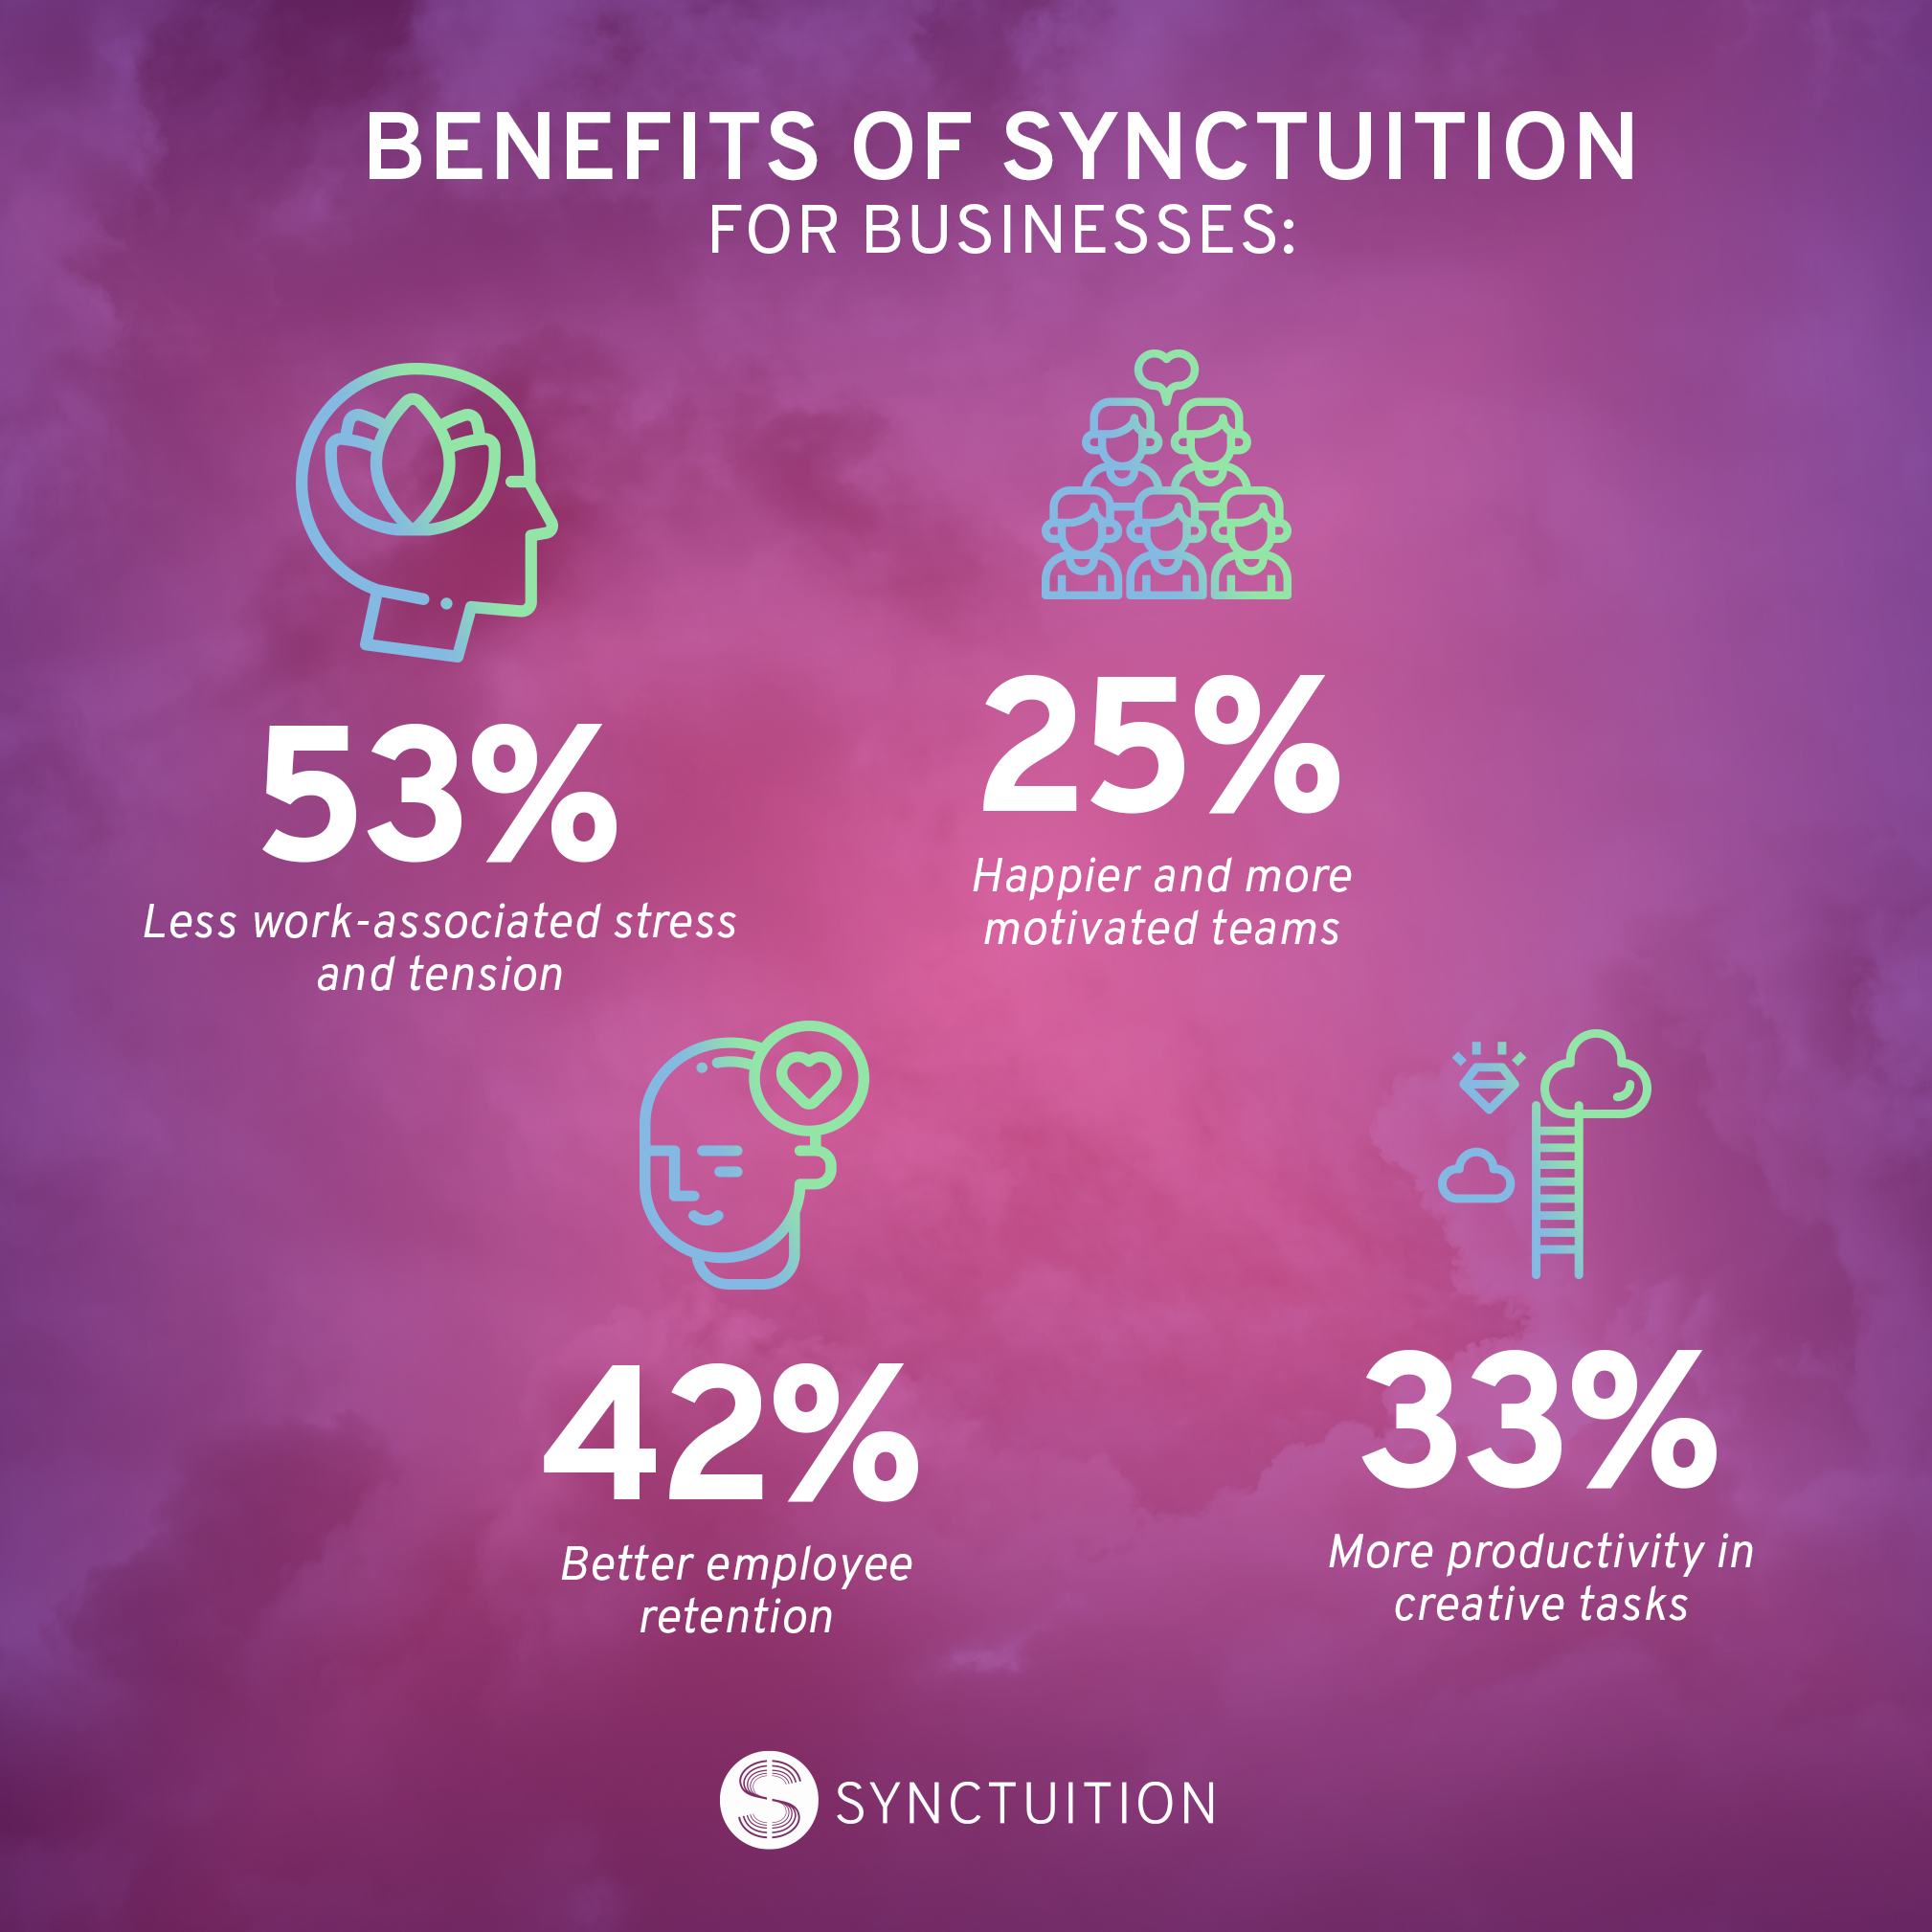 Synctuition has many benefits and is an excellent tool for promoting optimal mental health at the workplace.